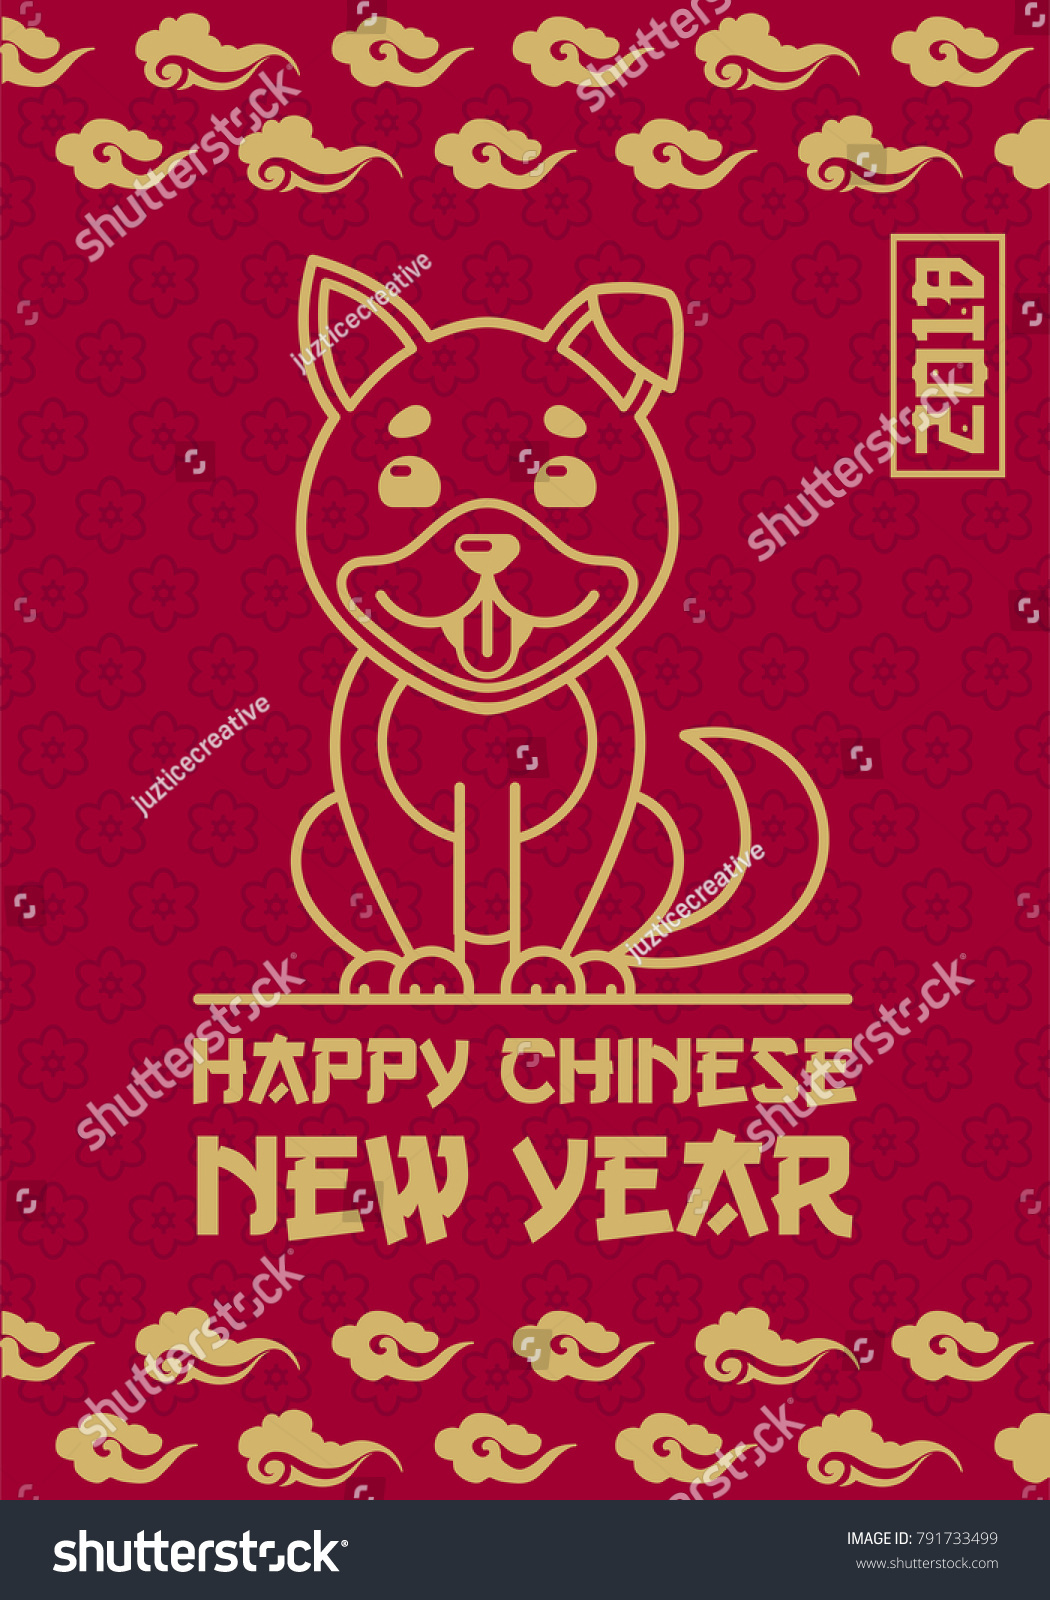 Happy chinese new year message top chinese happy new year quotes happy chinese new year 2018 year of the dog greetings card china january chineses new kristyandbryce Gallery